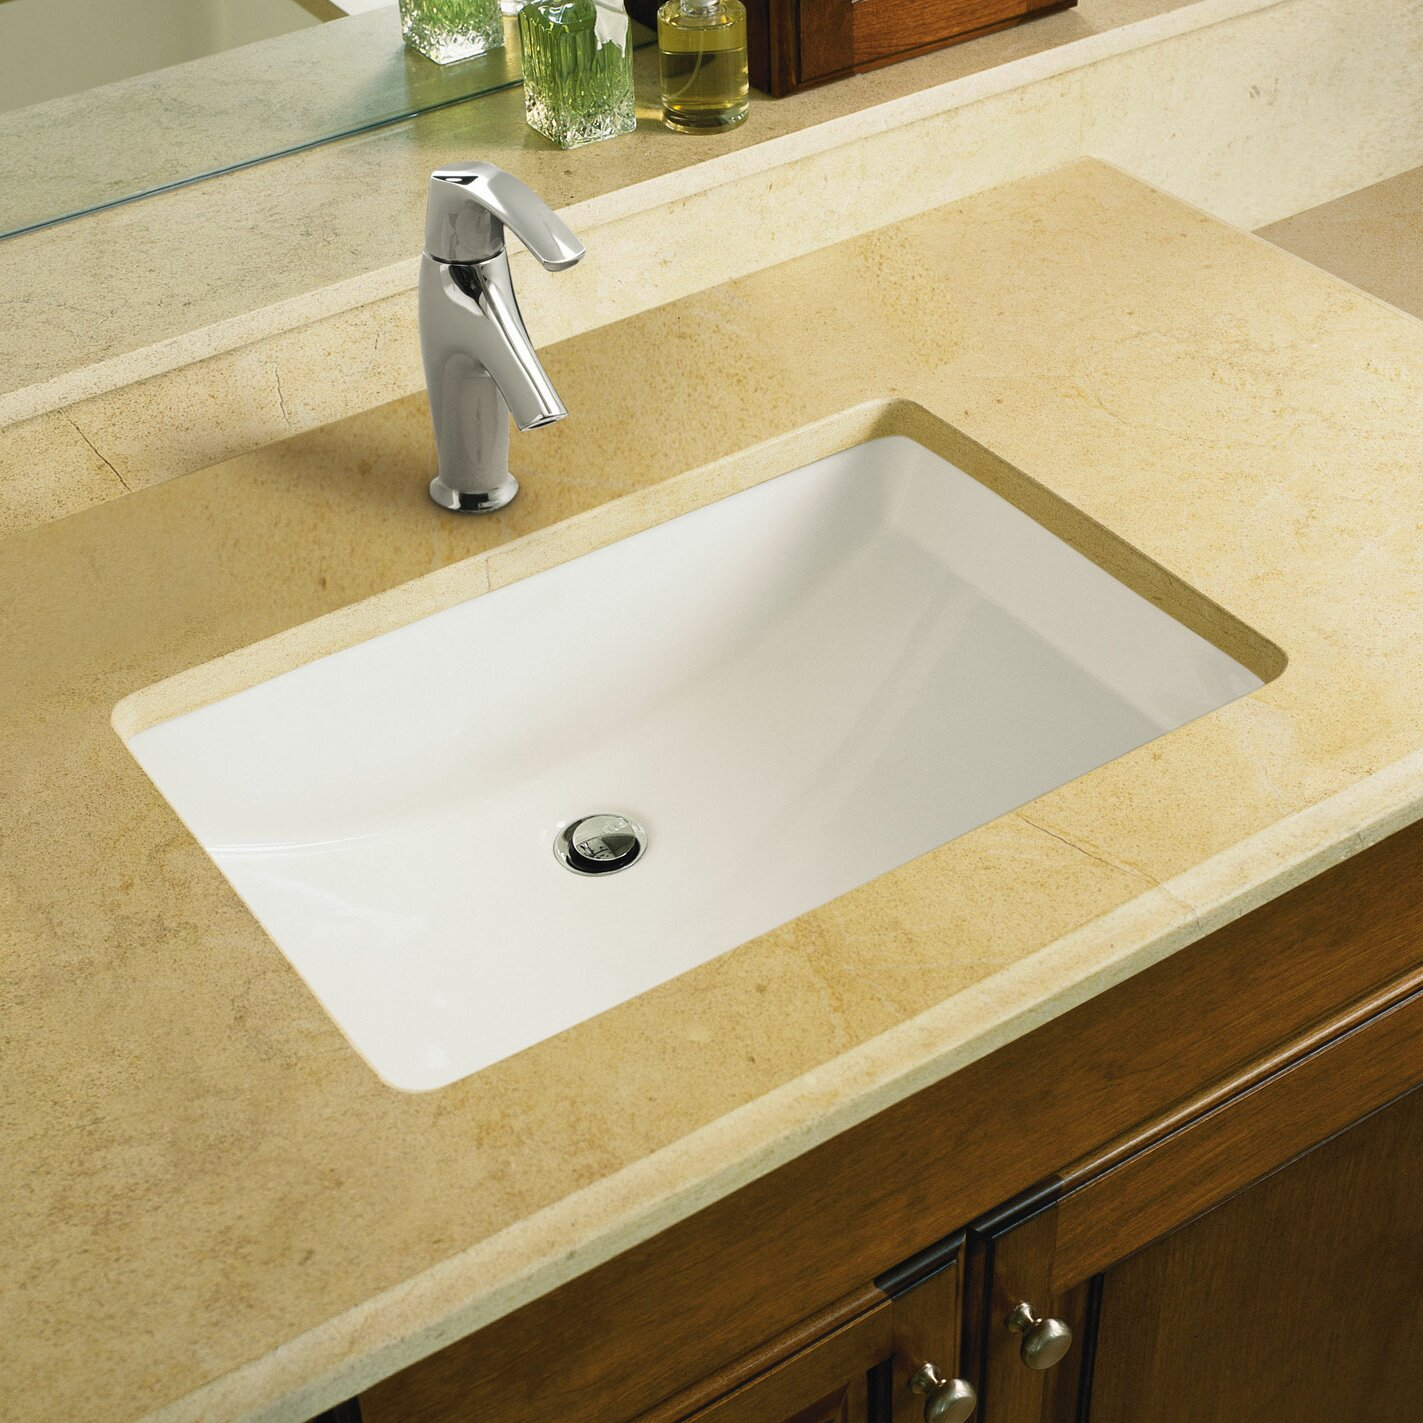 Kohler Ladena Rectangular Undermount Bathroom Sink with Overflow